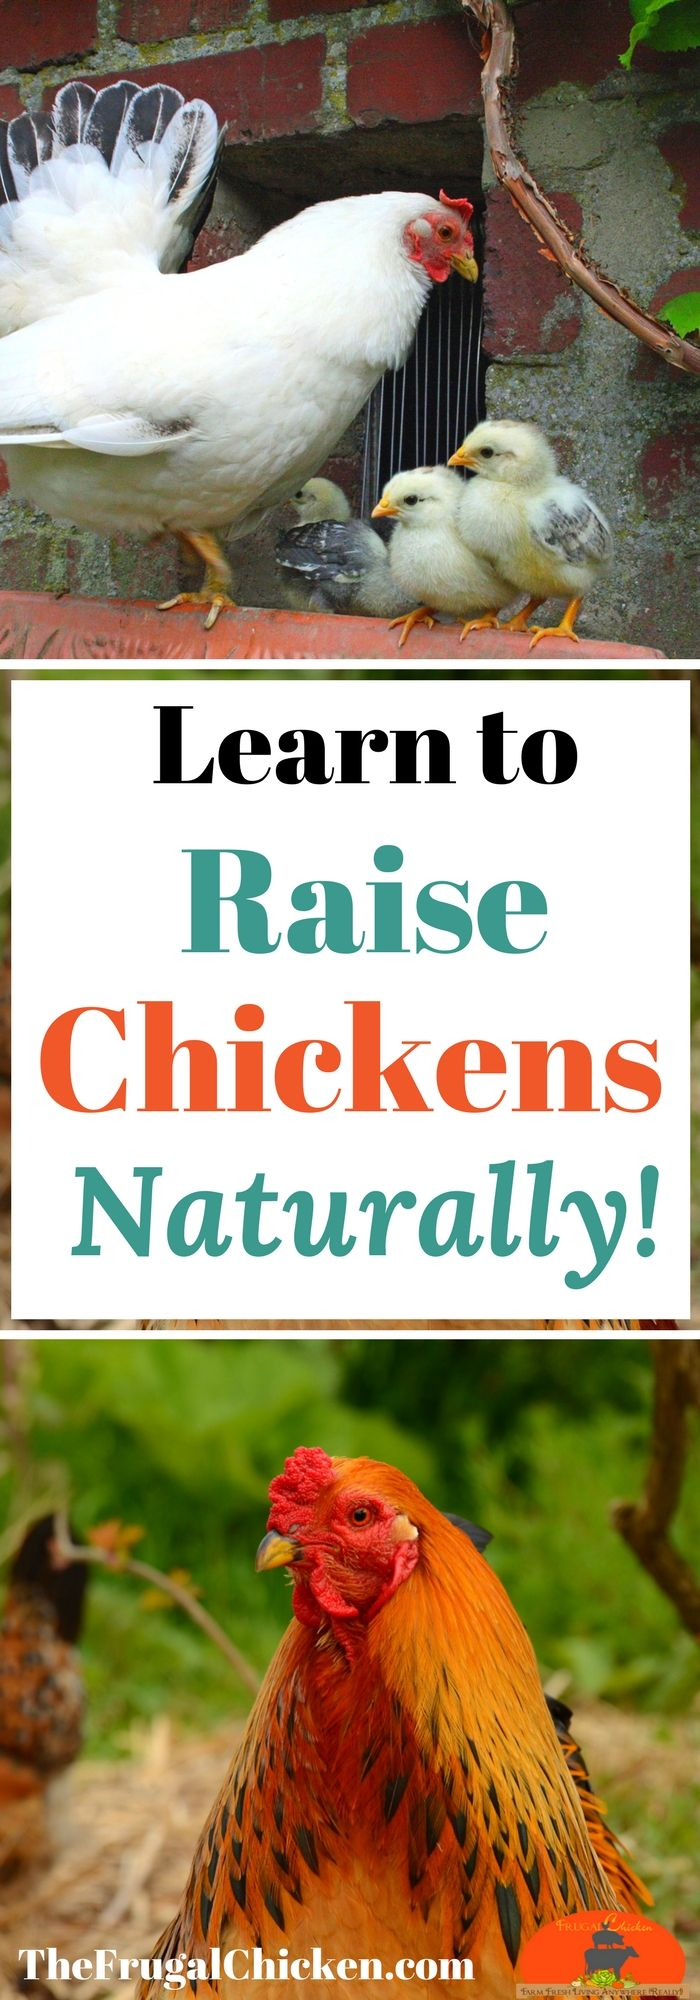 Want to raise your chickens naturally? In this 150 page e-book, you'll discover the go-to backyard chicken guide 350,000 people every month rely on! You'll get recipes for organic homemade layer feeds, a Week-By-Week baby chick starter guide, 40 full-color photographs and more! Just $10!